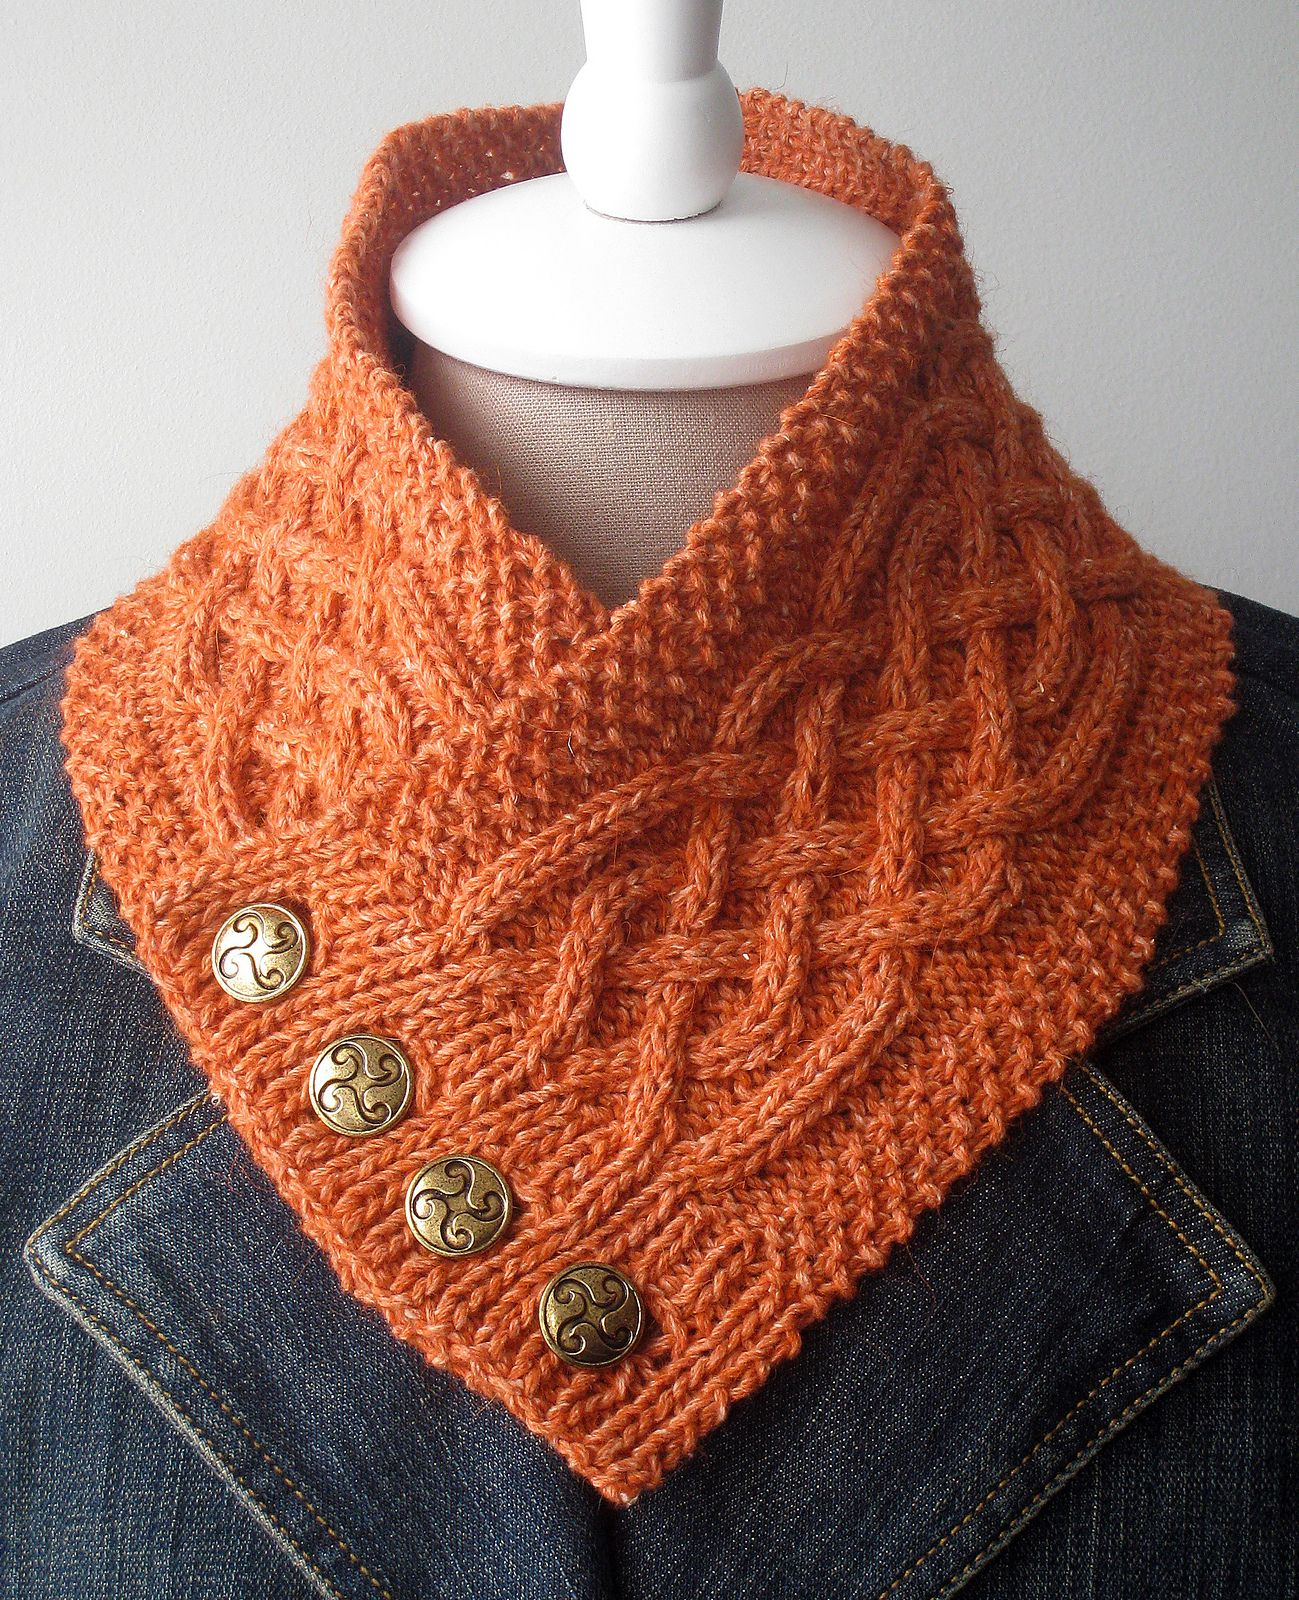 Ravelry celtic cable neckwarmer by lindsay henricks tonight free knitting pattern for celtic cable neck warmer and more neck warmer knitting patterns perfect way to try out and display celtic cables bankloansurffo Gallery